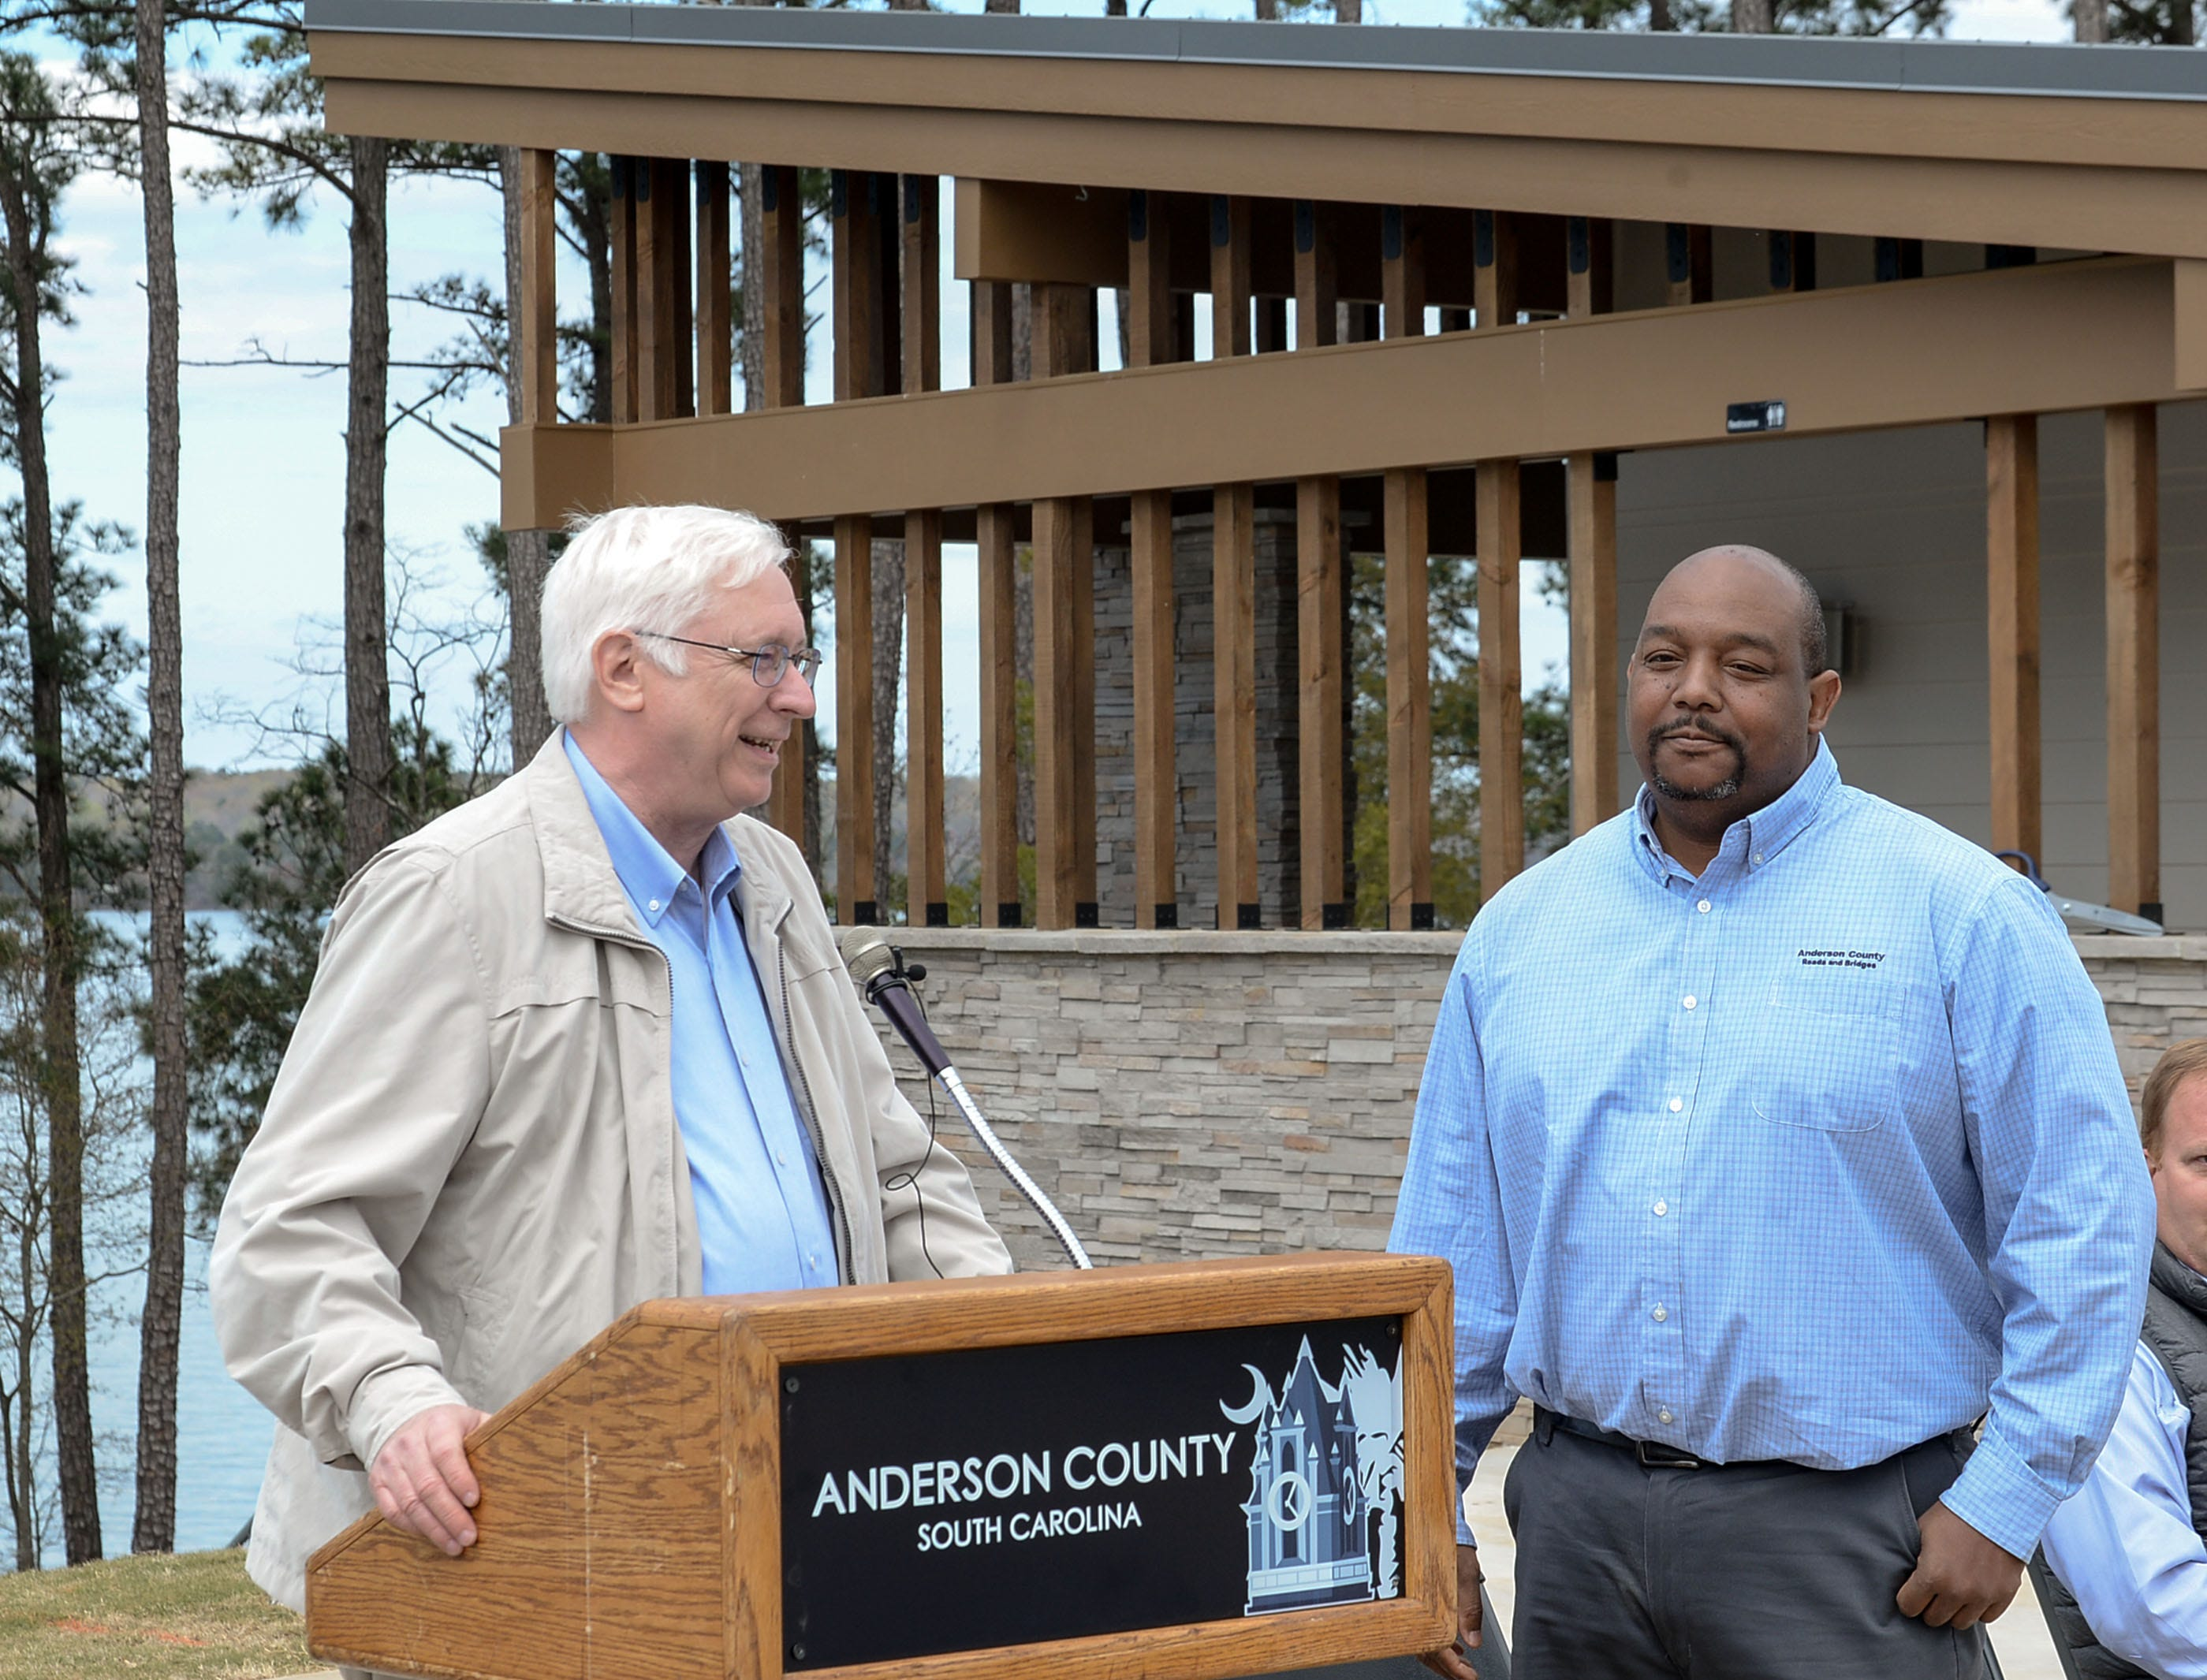 Holt Hopkins, left, Anderson County Public Works director, speaks near Chris Robinson, director of Roads and Bridges, during the Green Pond Landing & Event Center Facilities ribbon cutting event in Anderson Tuesday.